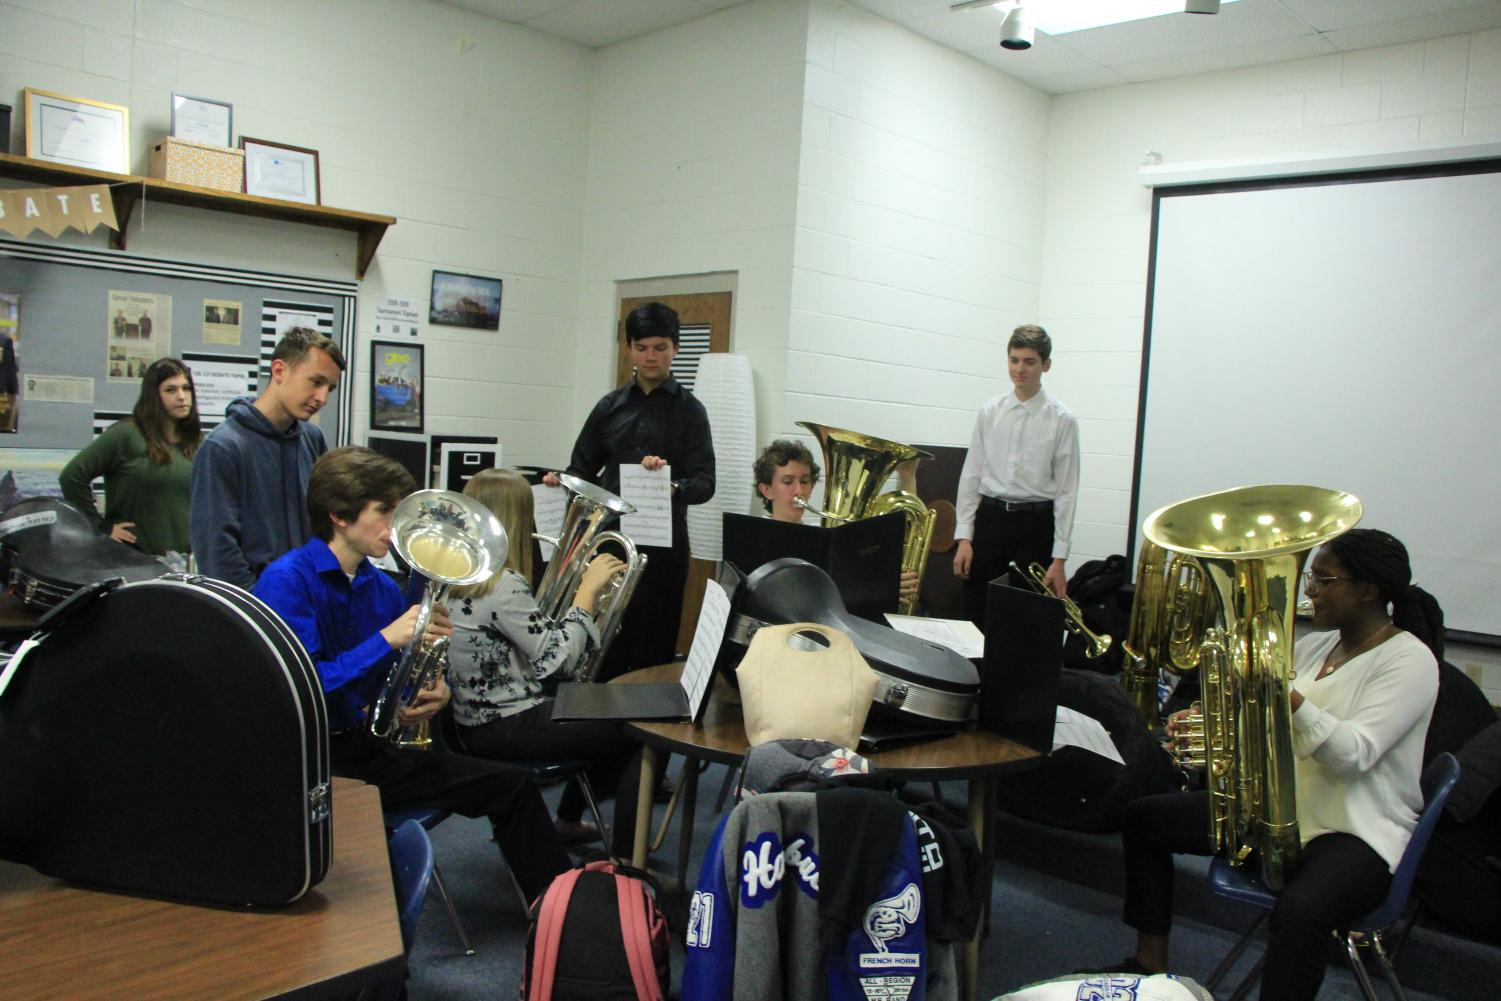 Band students warm up and practice in the debate room. They were able to run their music before they performed.